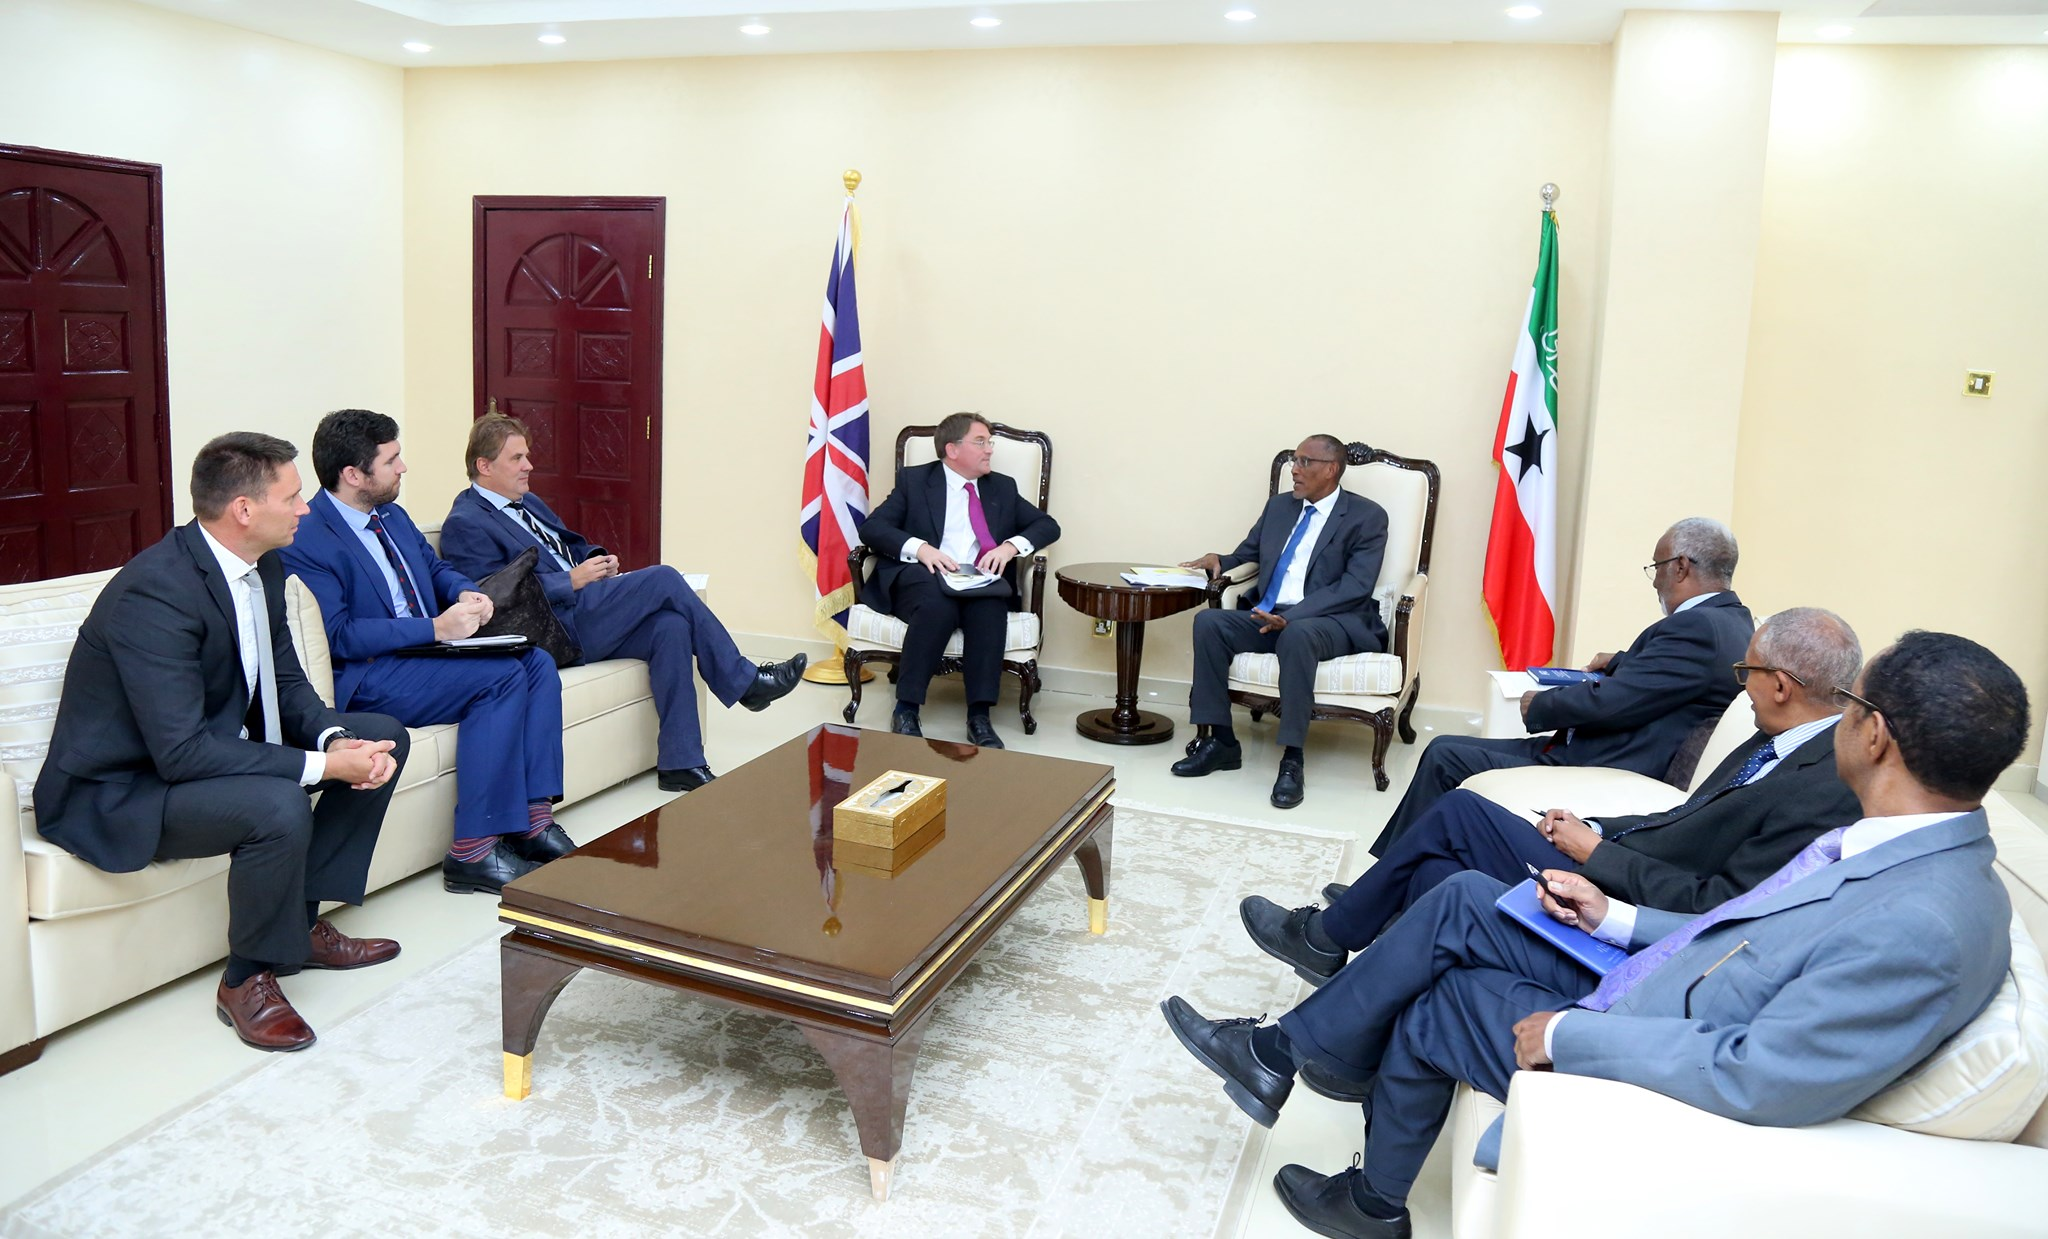 Somaliland President Muse Bihi Abdi received Uk Ambassador to Somalia Benfendor in his office.